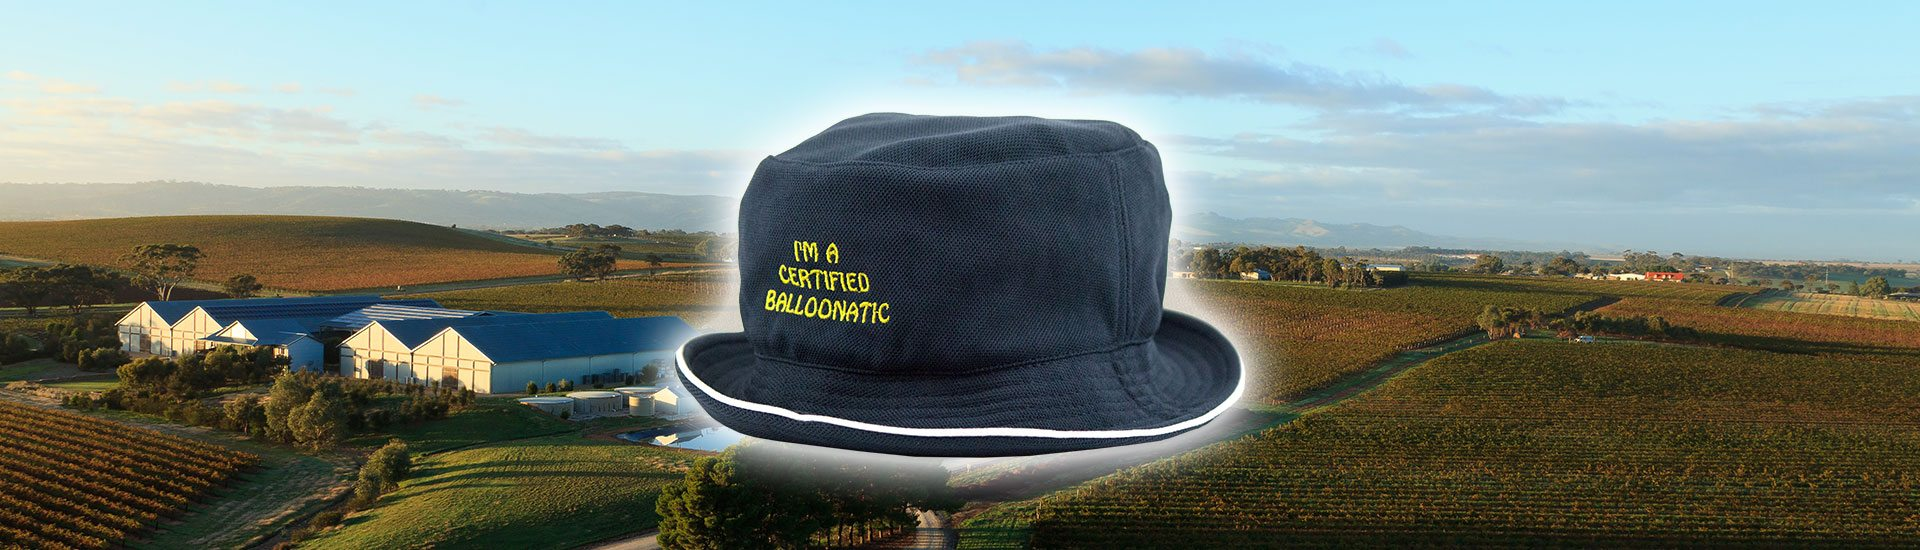 balloon-adventures-flights-over-the-barossa-valley-merchandise-certified-balloonatic-navy-blue-hat